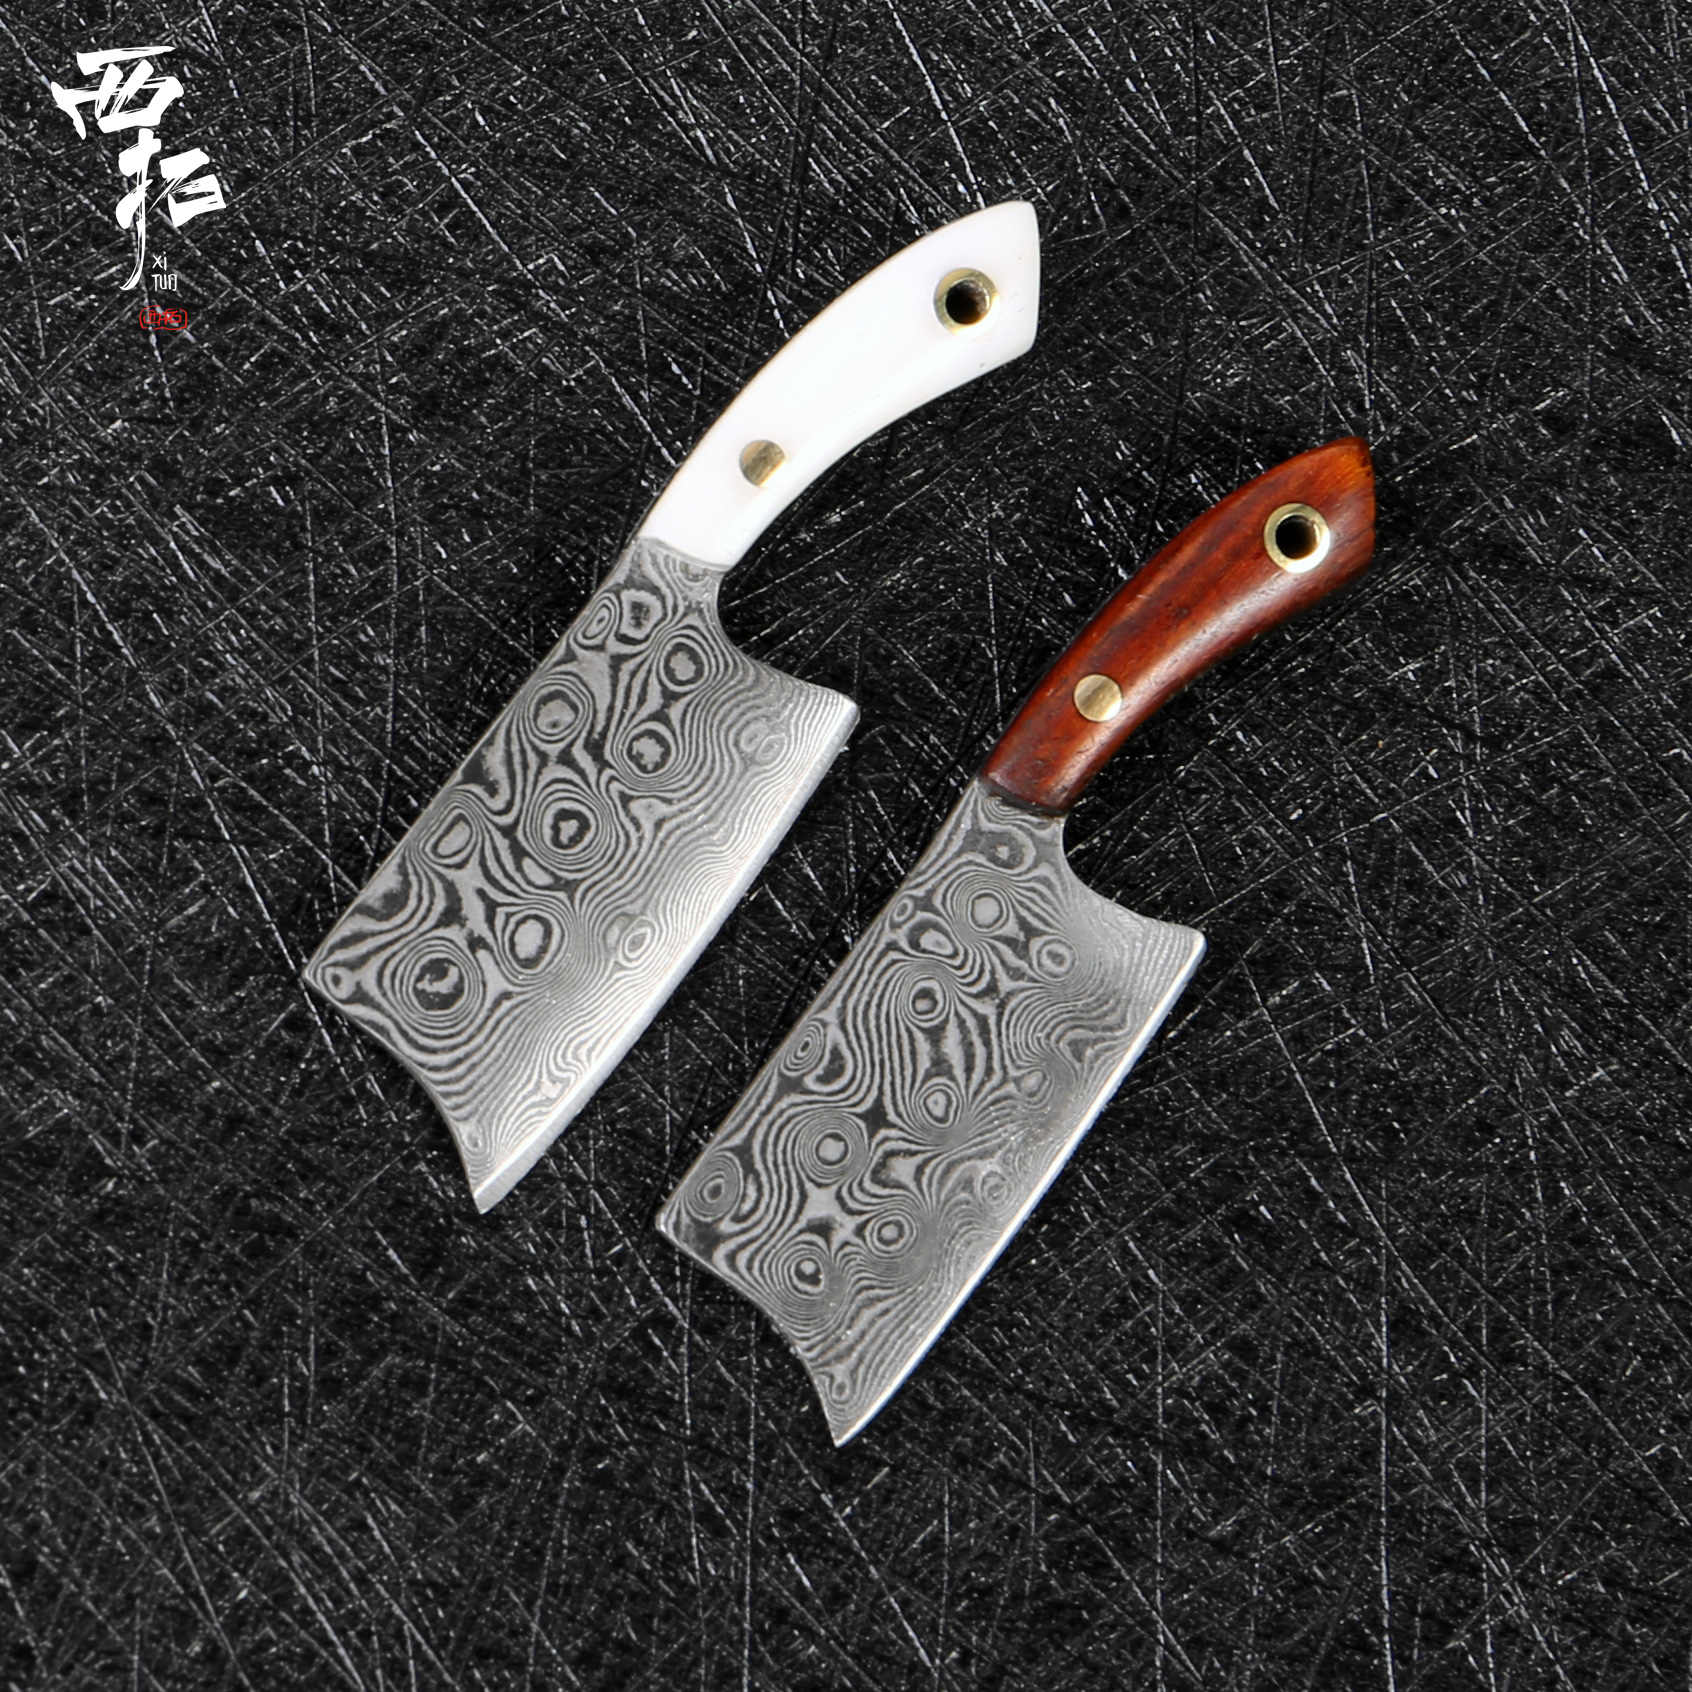 XITUO Mini Knife Damascus Steel Kitchen Chef Knife Paring Knife Outdoor Keychain Collection Boutique Gift Knife Daily Carry Hot